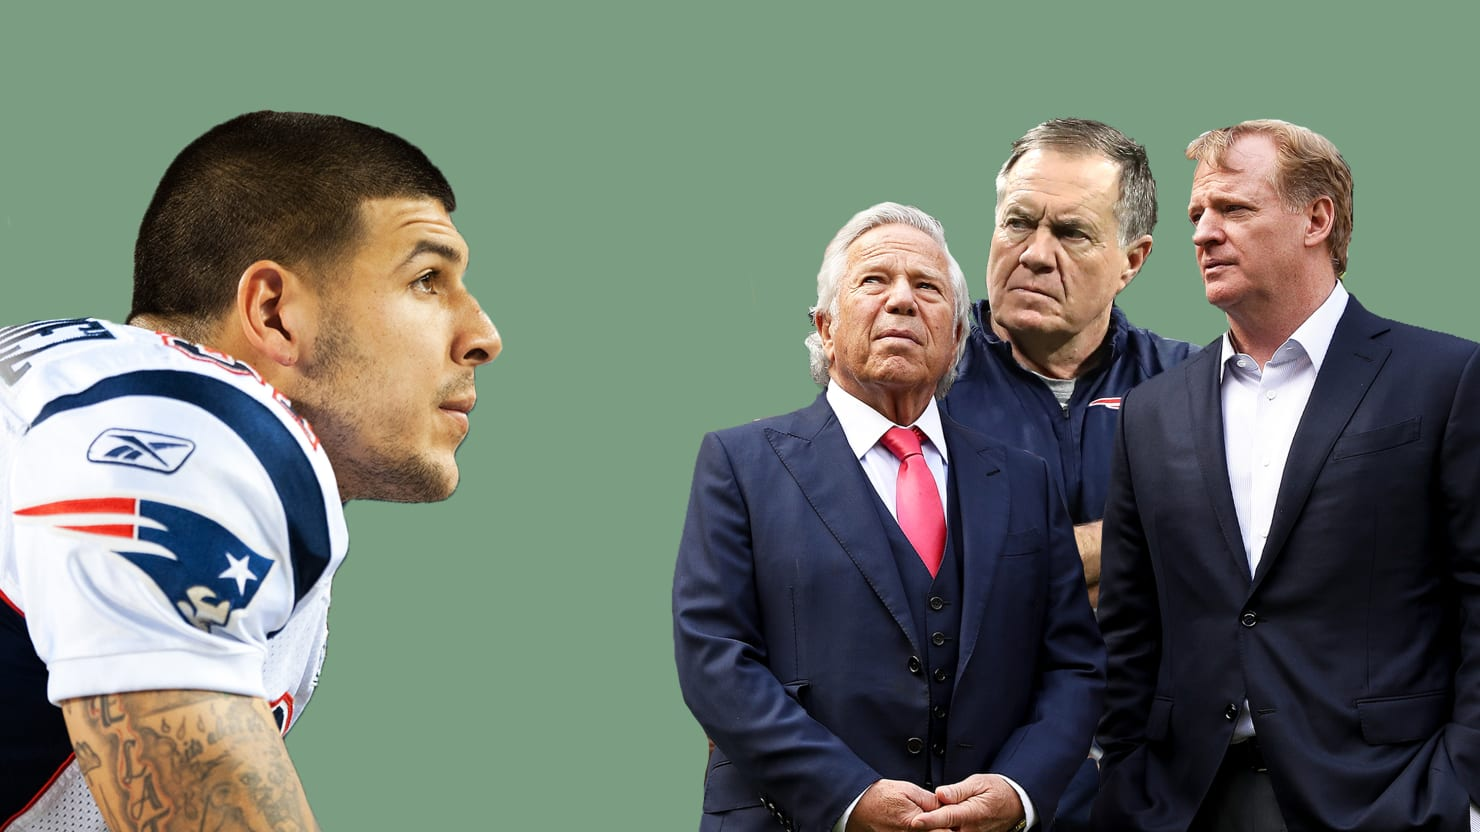 'Killer Inside' Claims the NFL and New England Patriots Were Complicit in Aaron Hernandez's Dark Turn